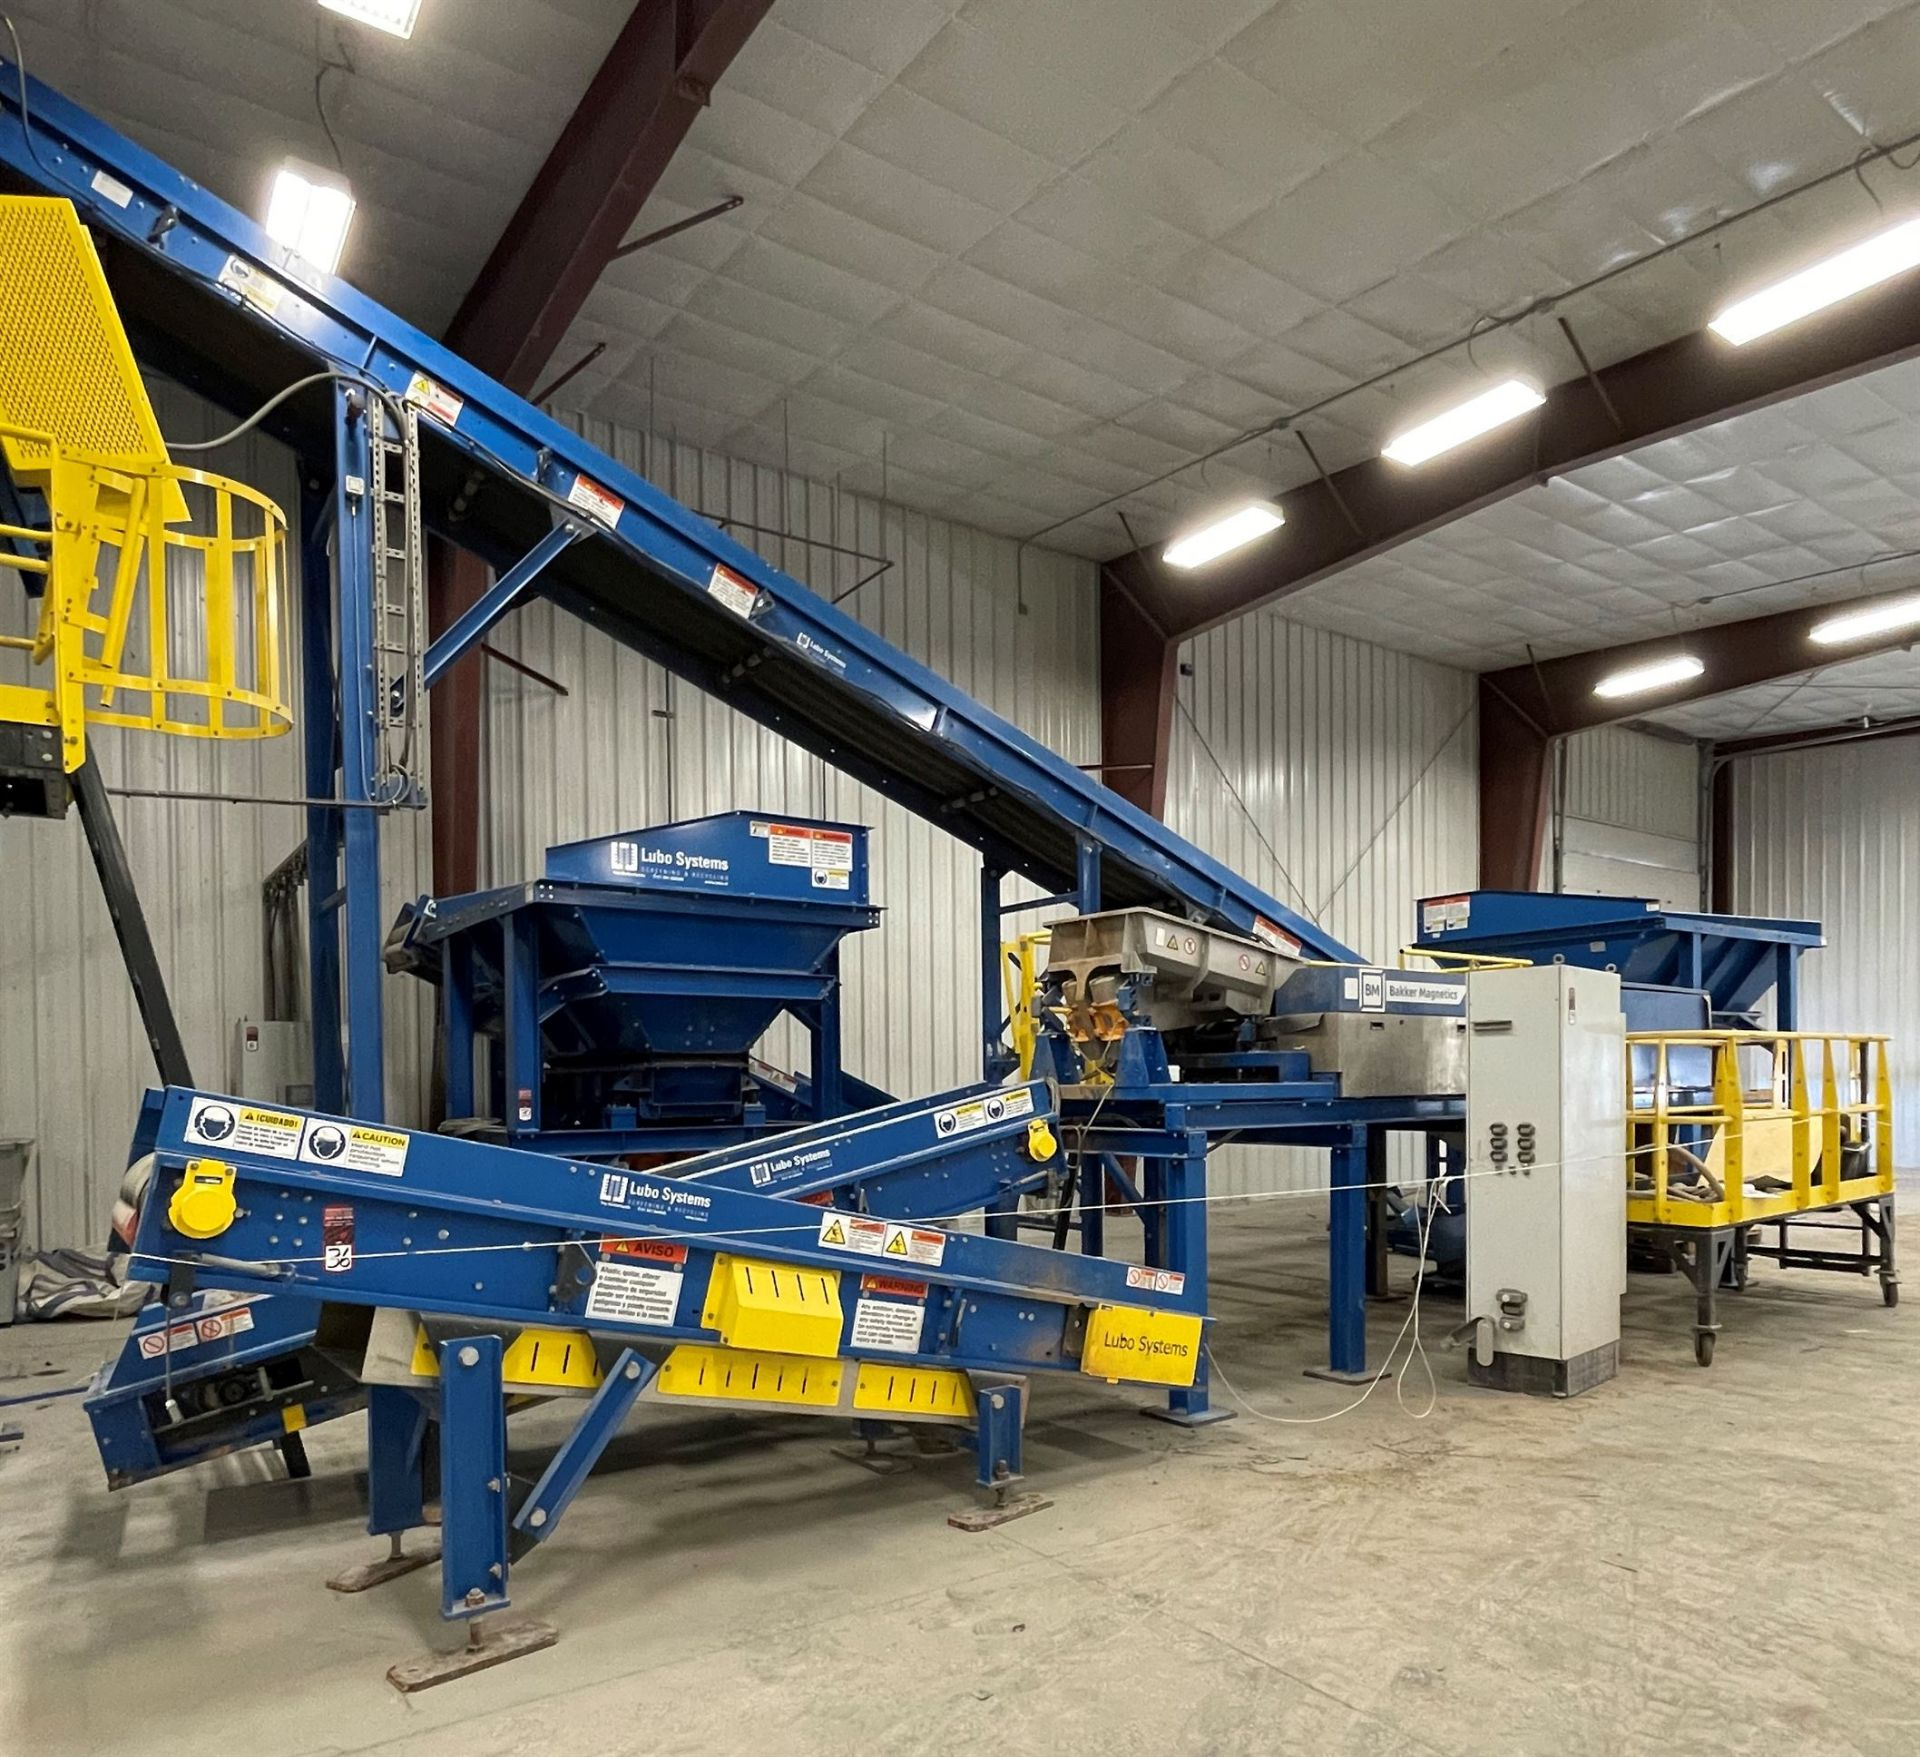 BULK LOT: 2015 VDL SYSTEMS Metal Recovery Eddy Current Separation Line as a Complete System, - Image 9 of 9